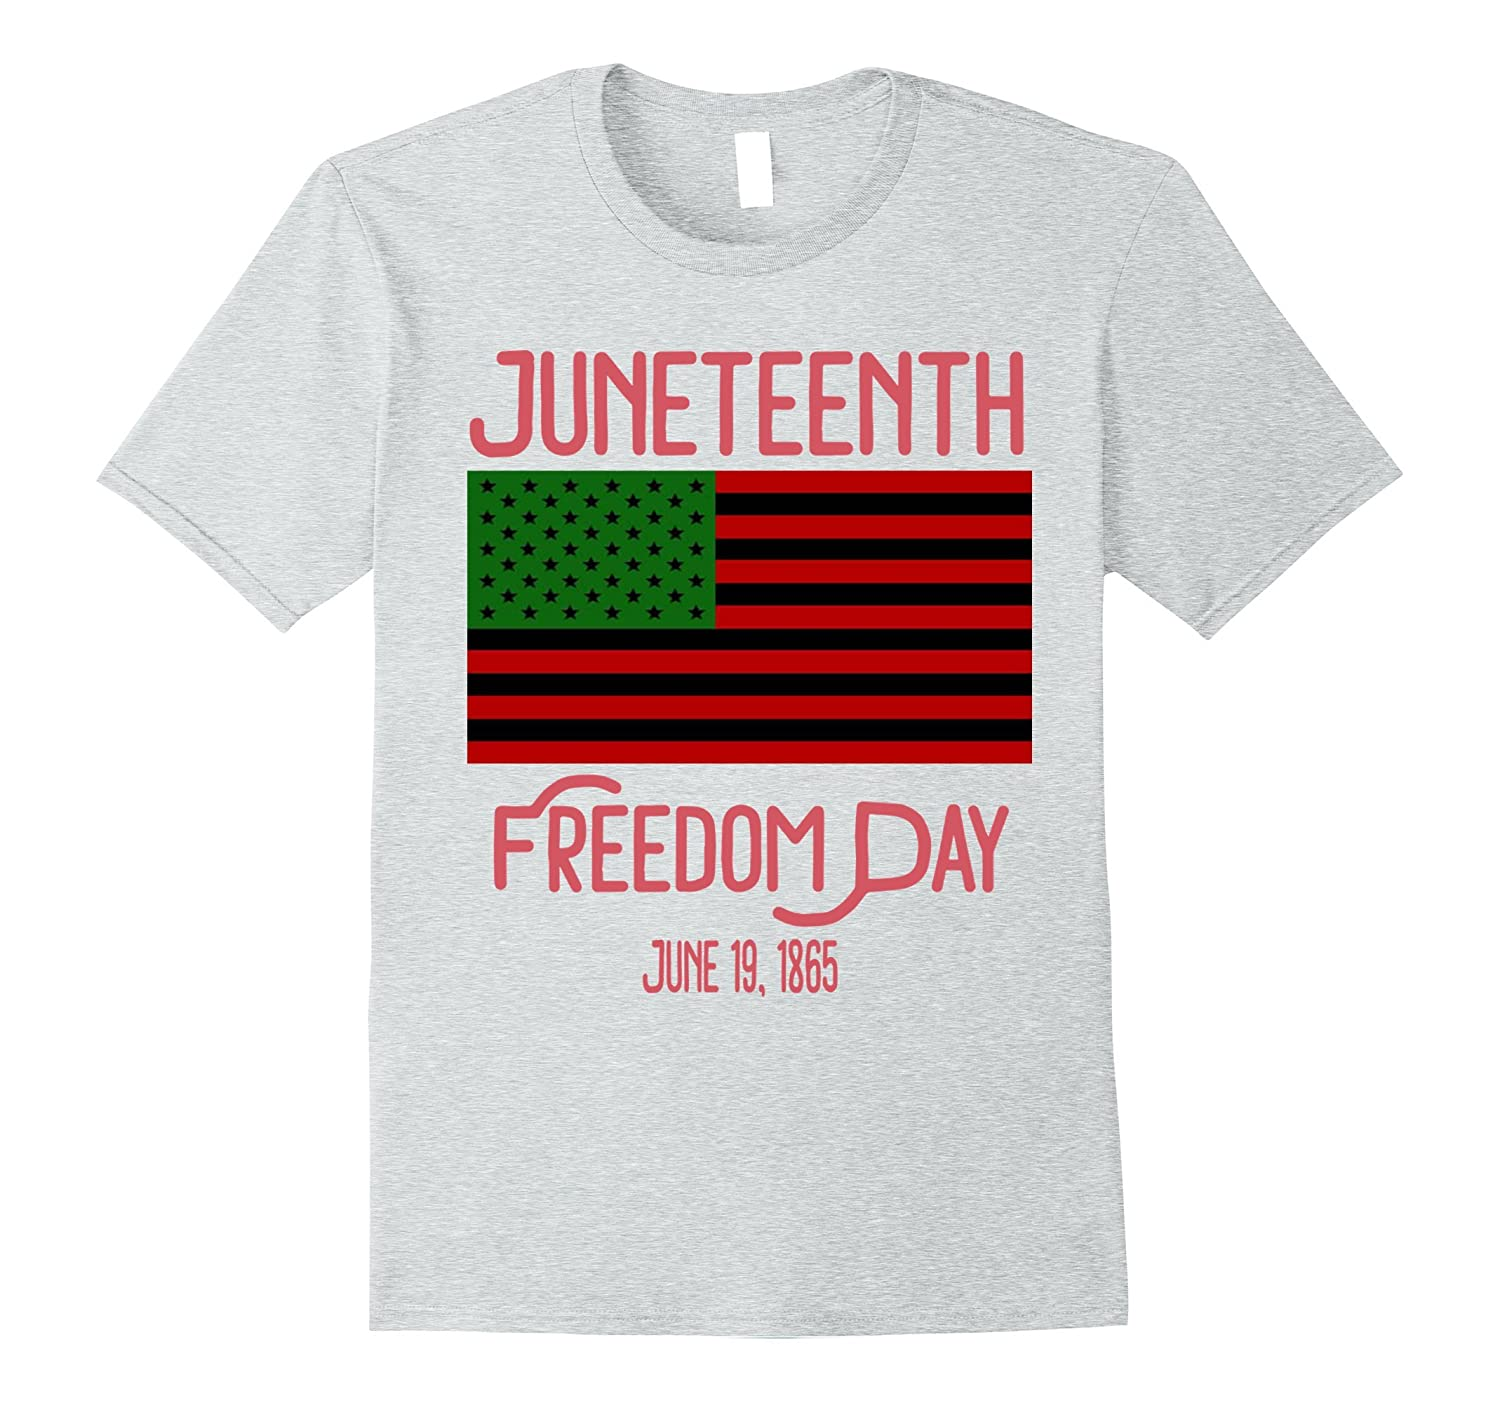 Juneteenth Freedom Day Black History